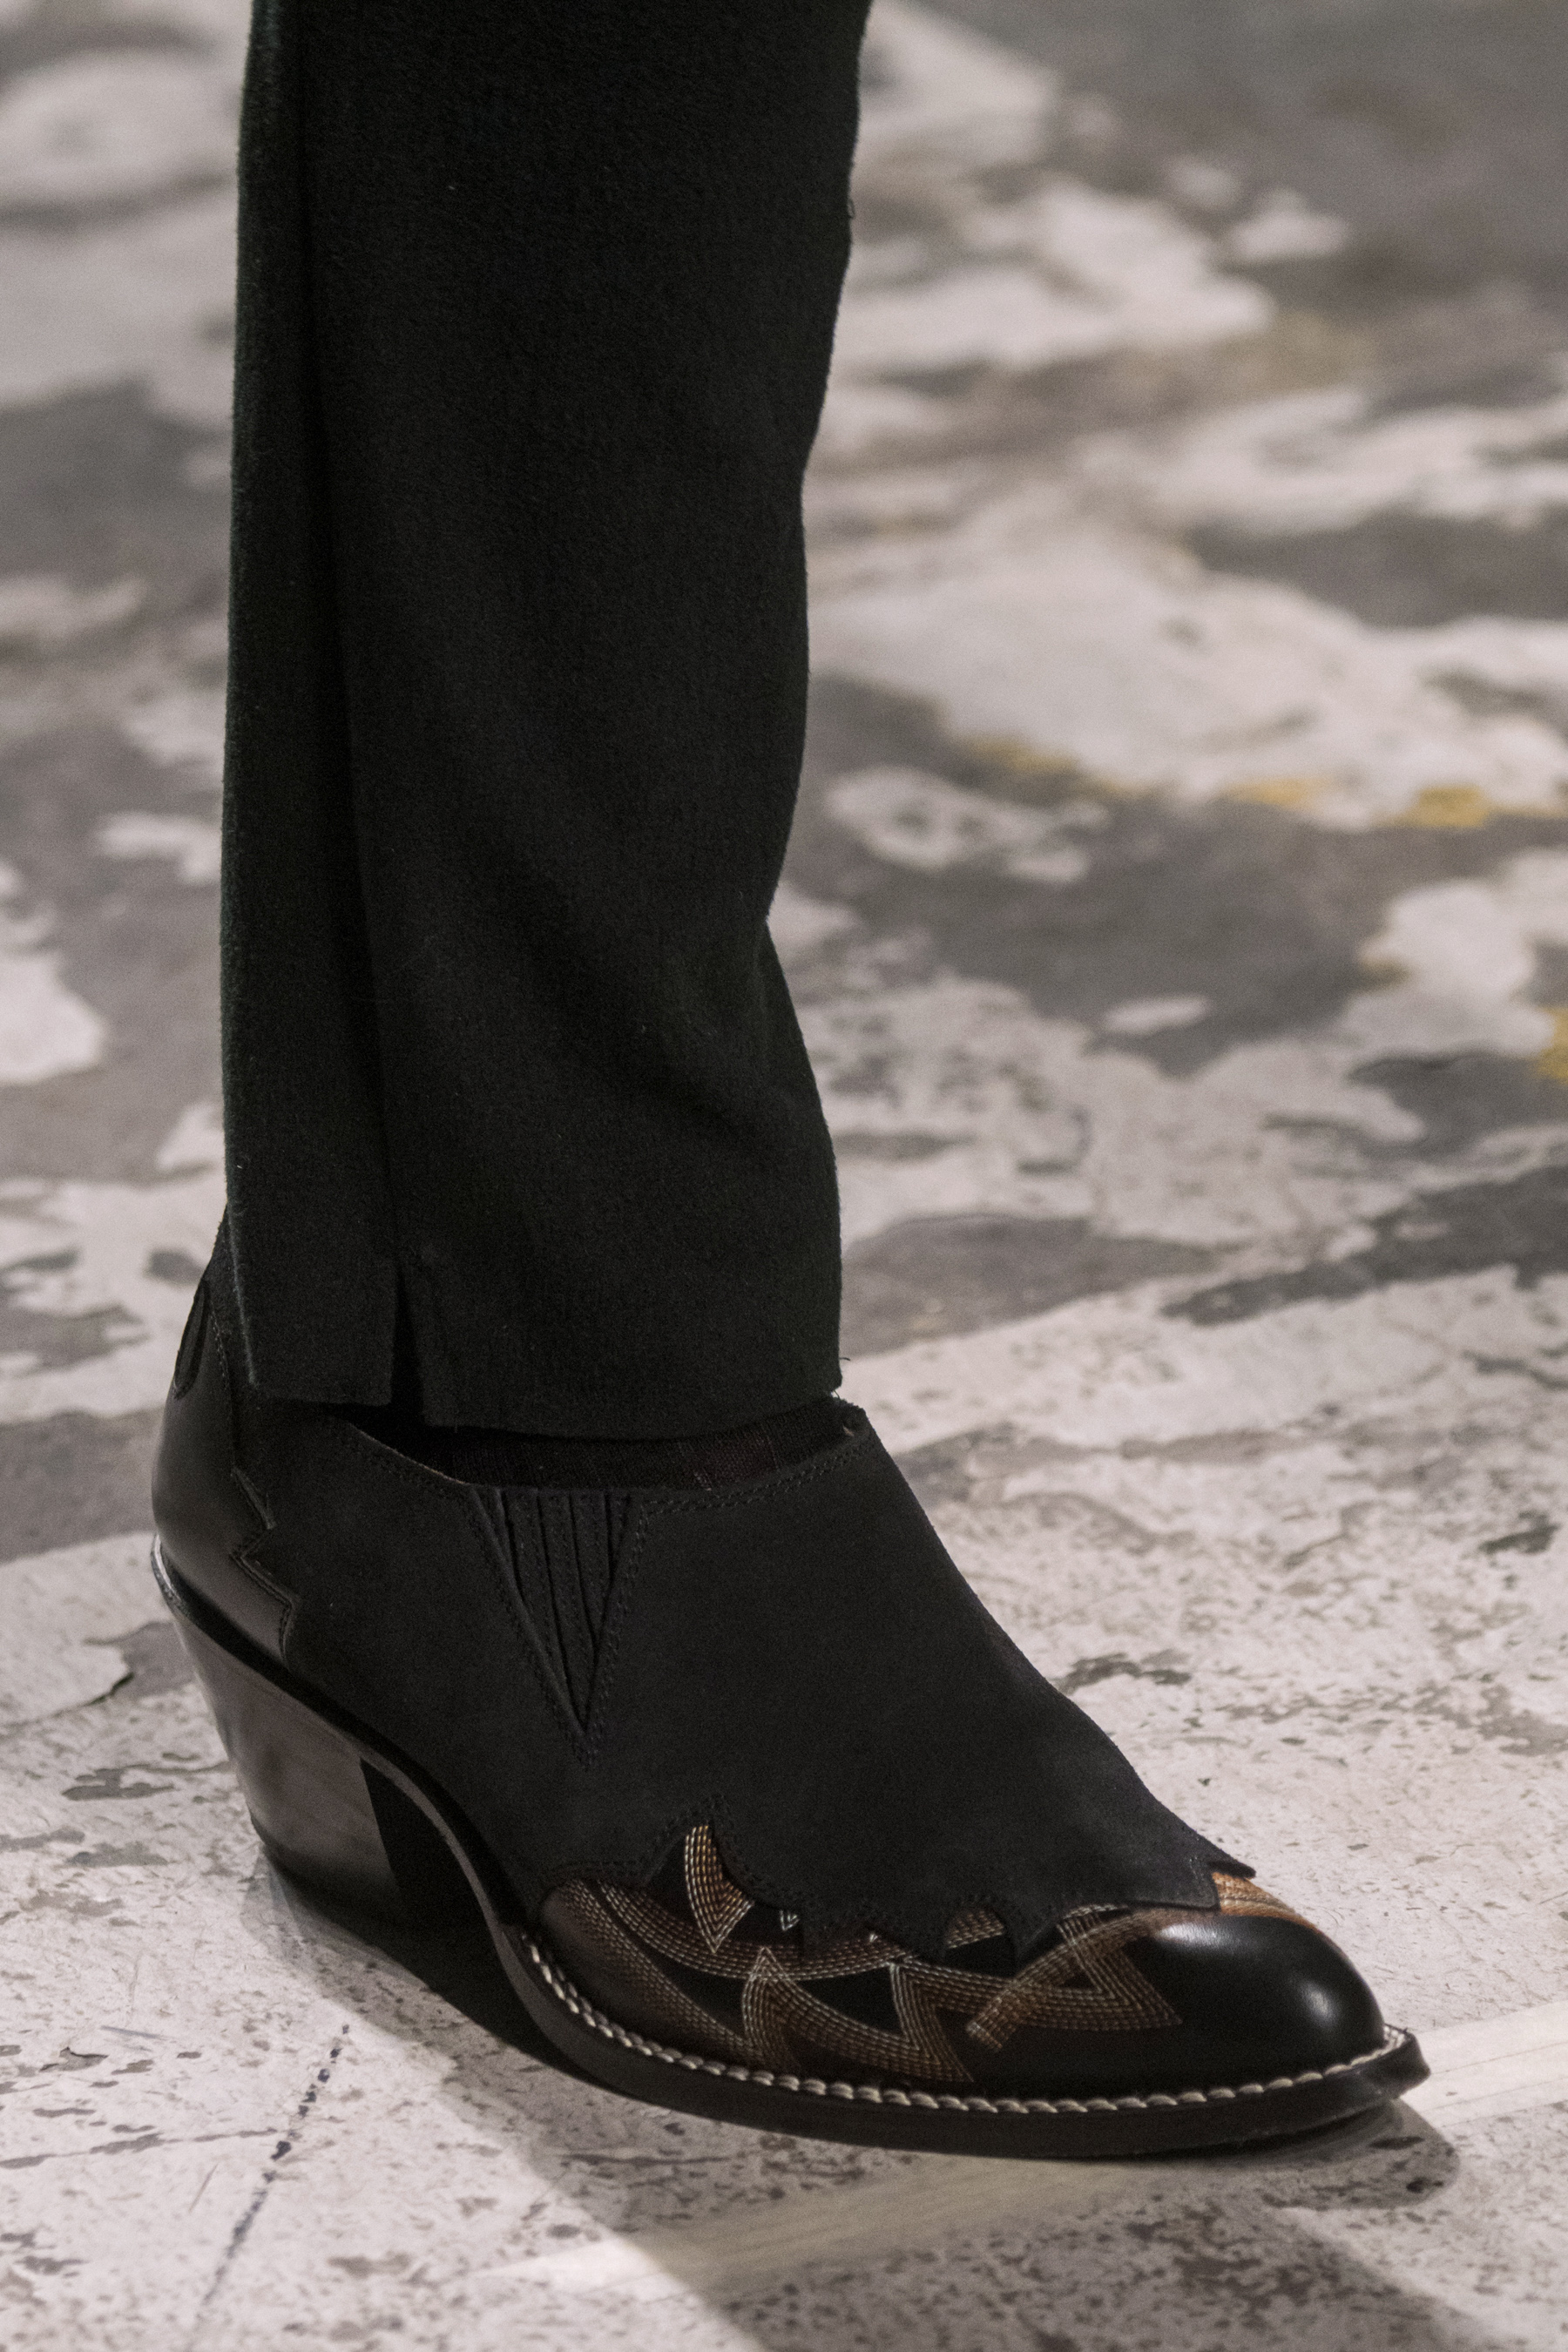 Bed J.w. Ford Fall 2019 Men's Fashion Show Details | The Impression